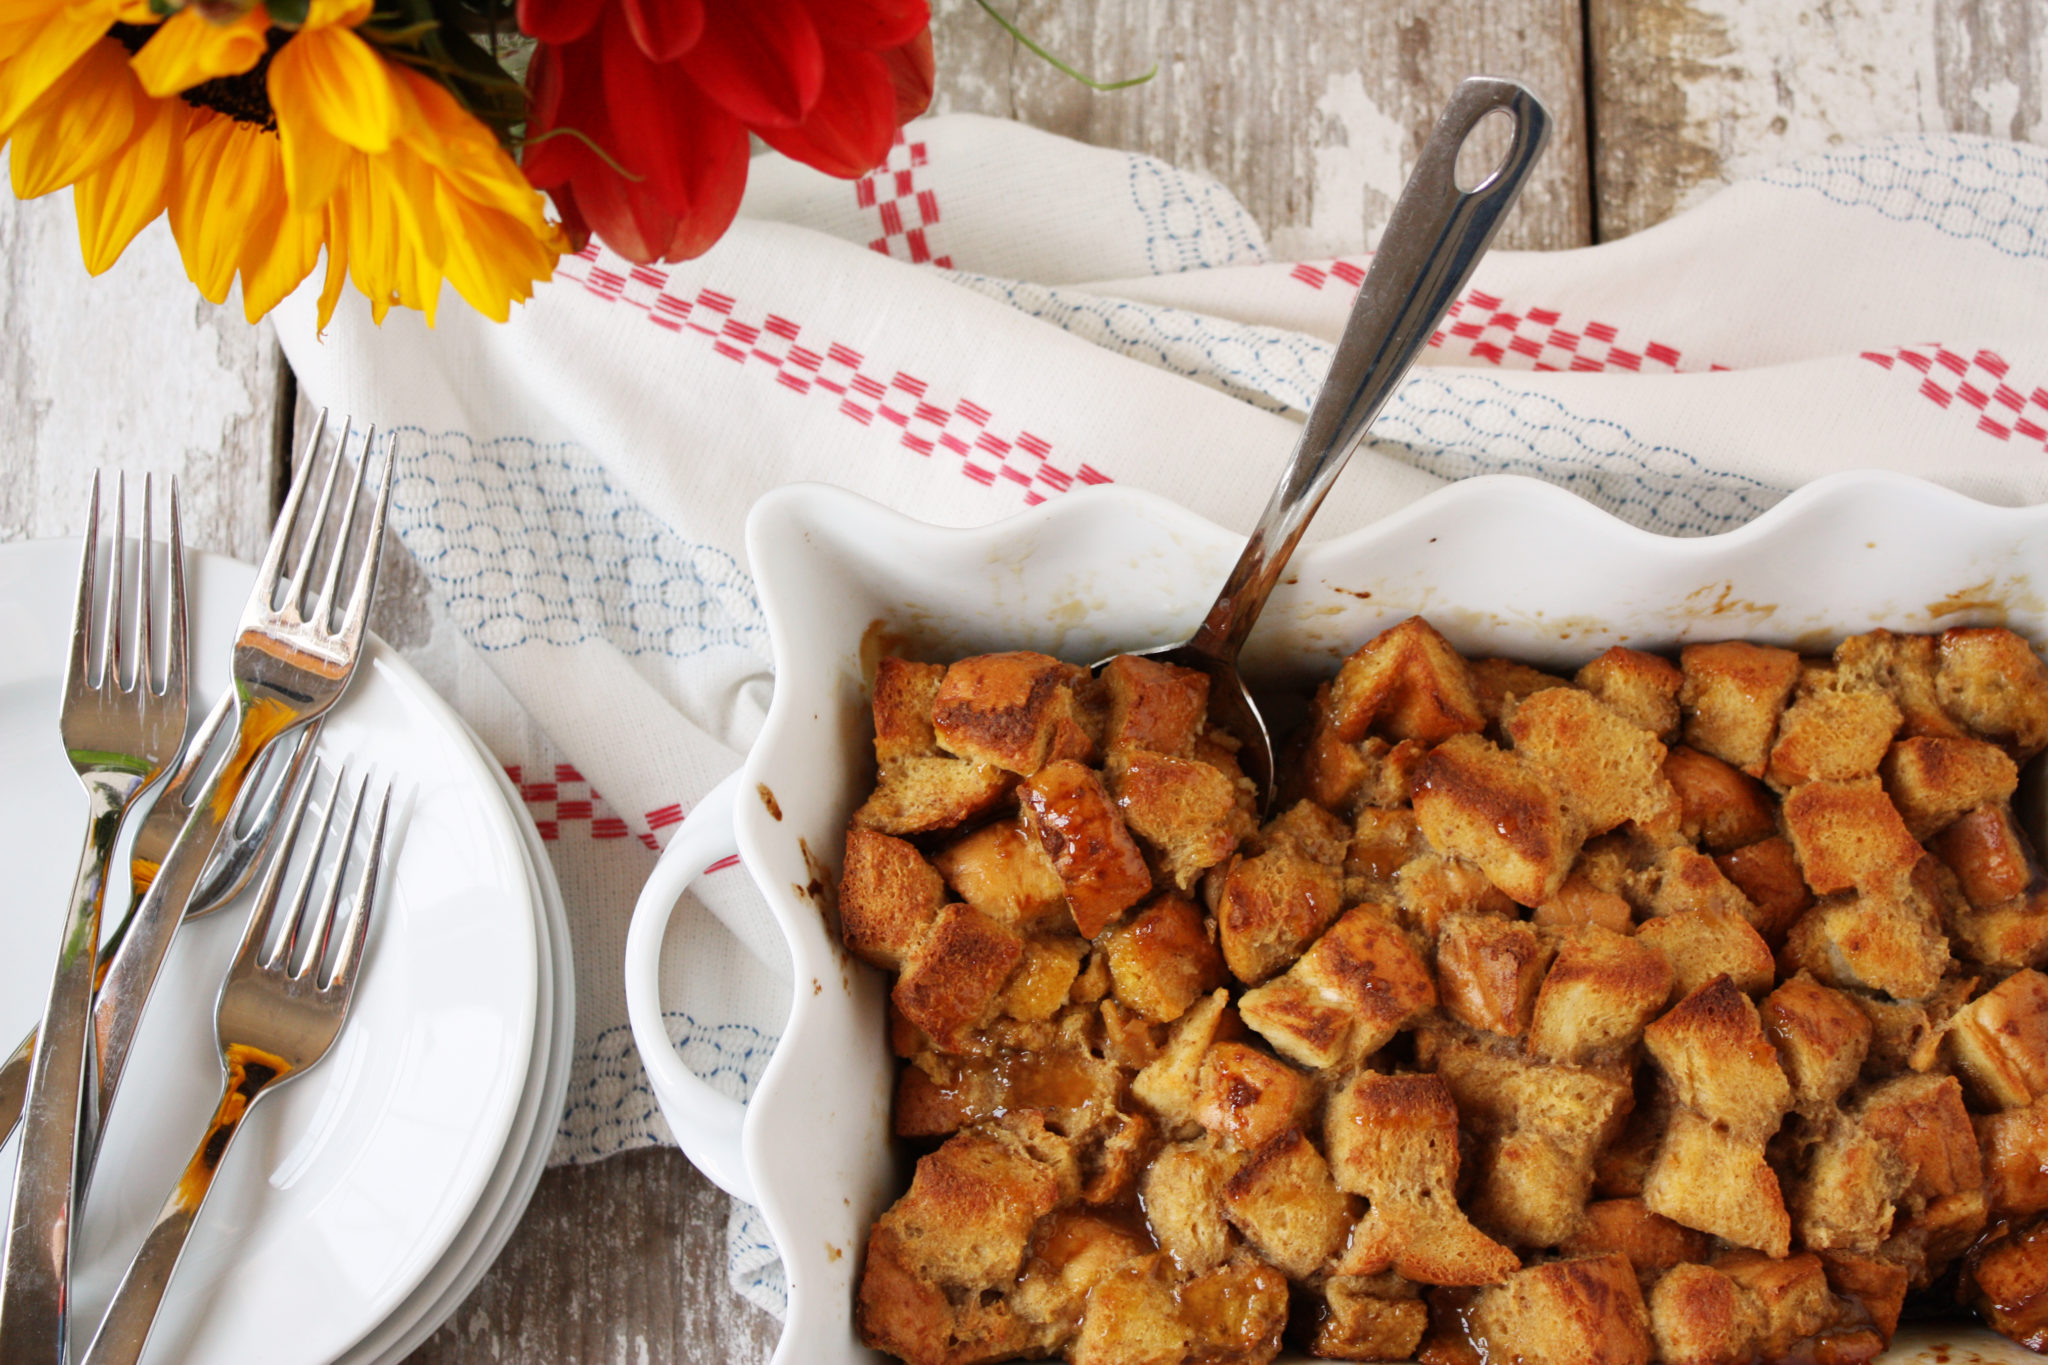 The easy, overnight french toast casserole has a layer of tart apples and buttery caramel sauce at the bottom!